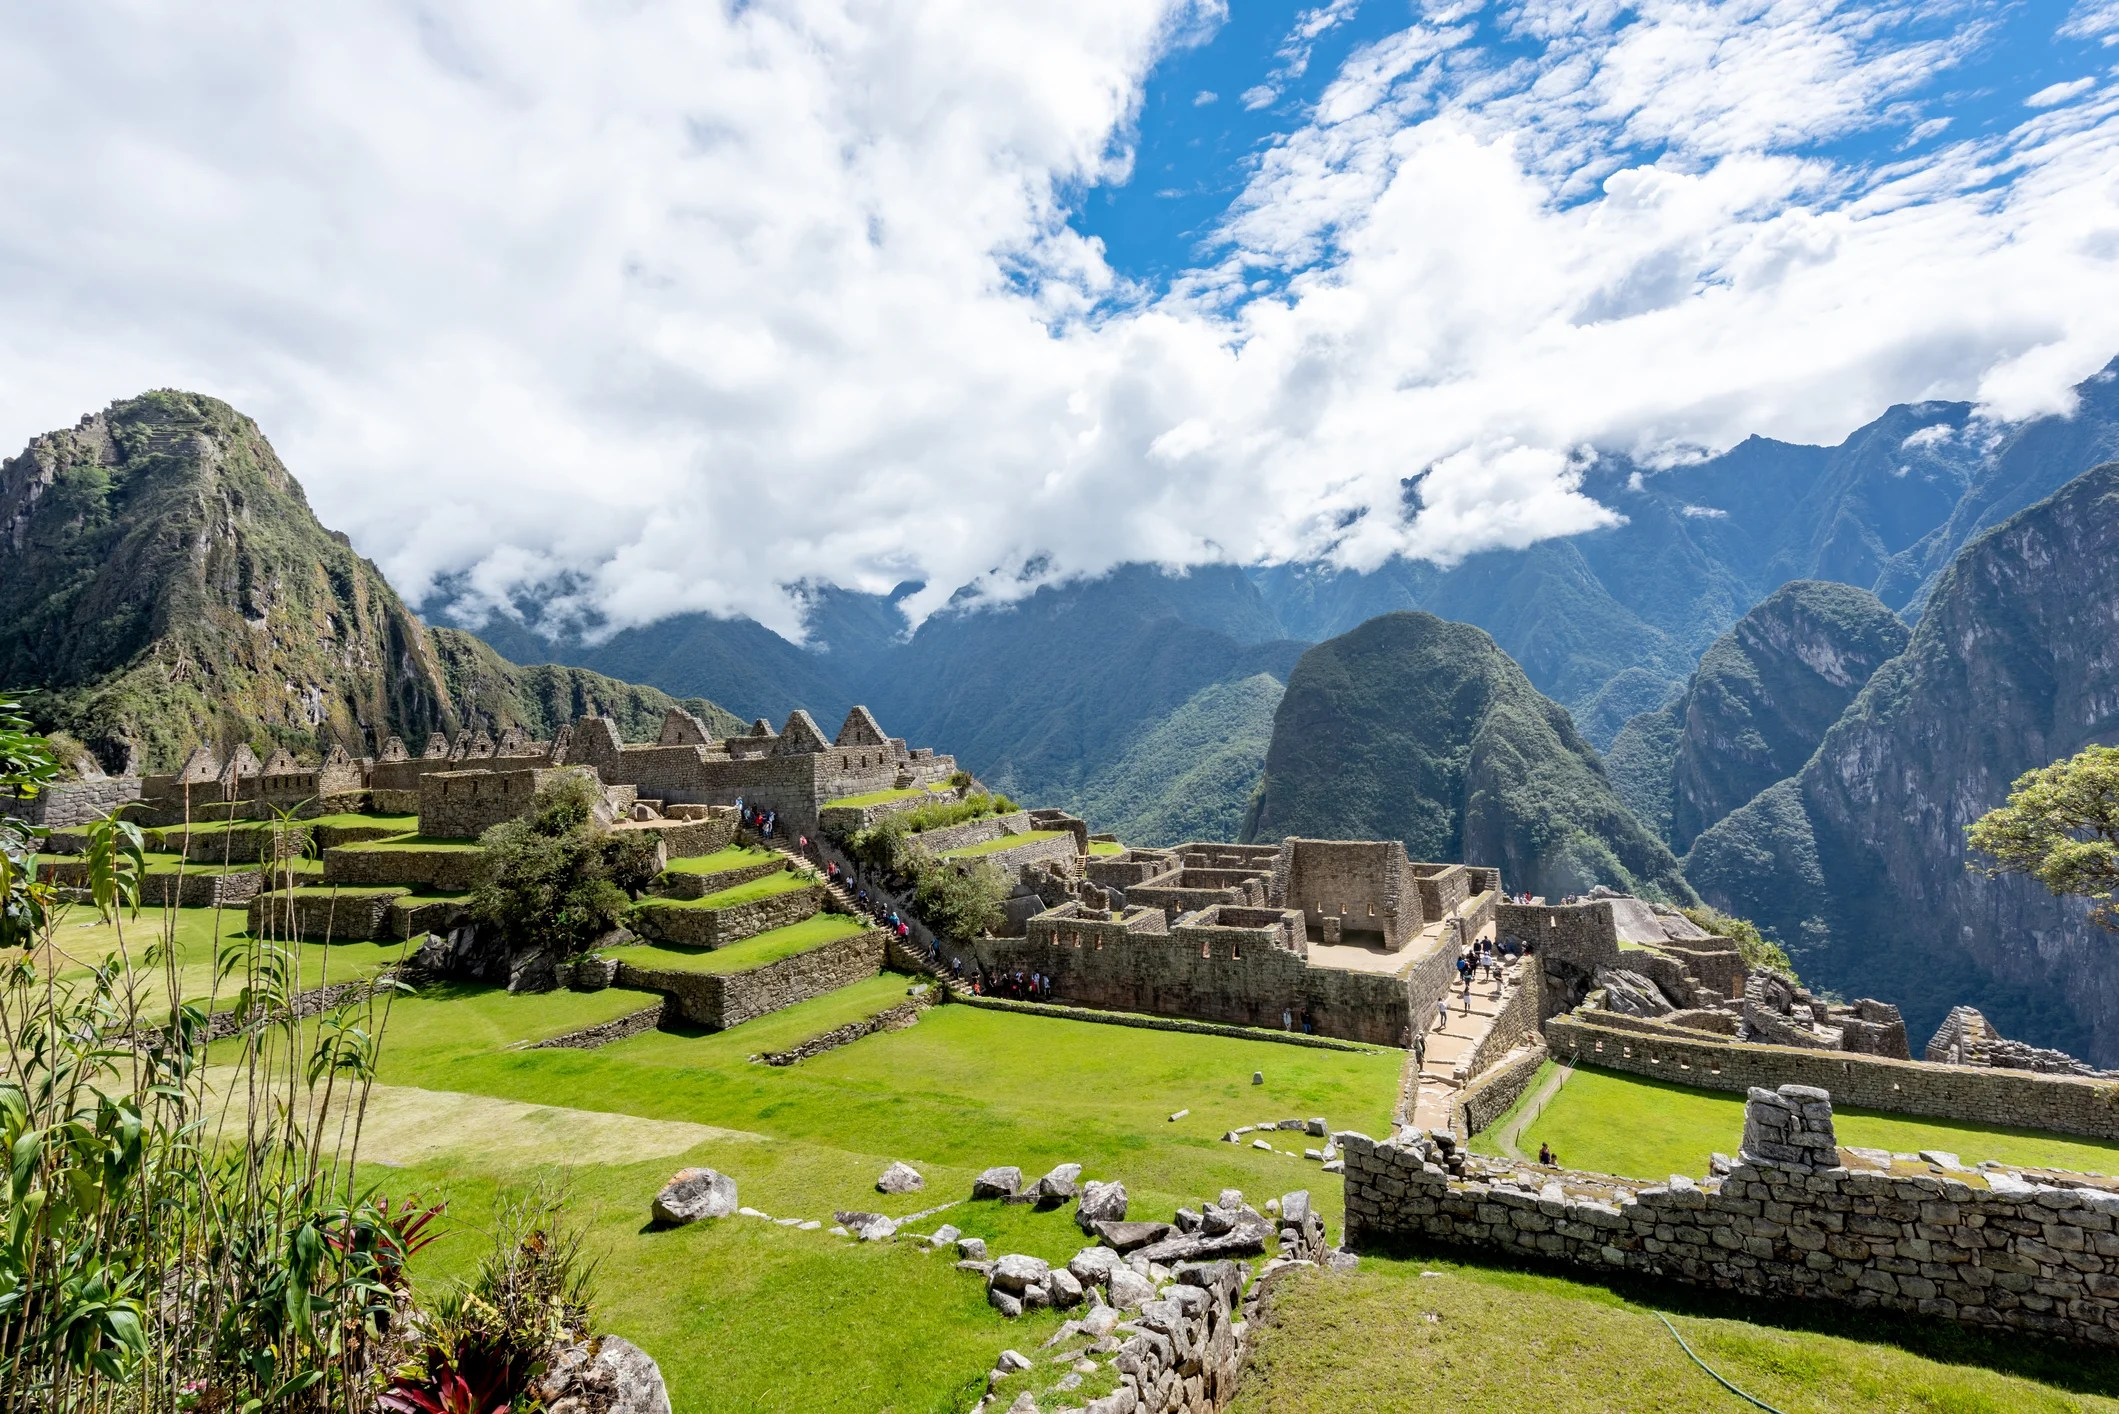 The Best Times to Travel to Machu Picchu